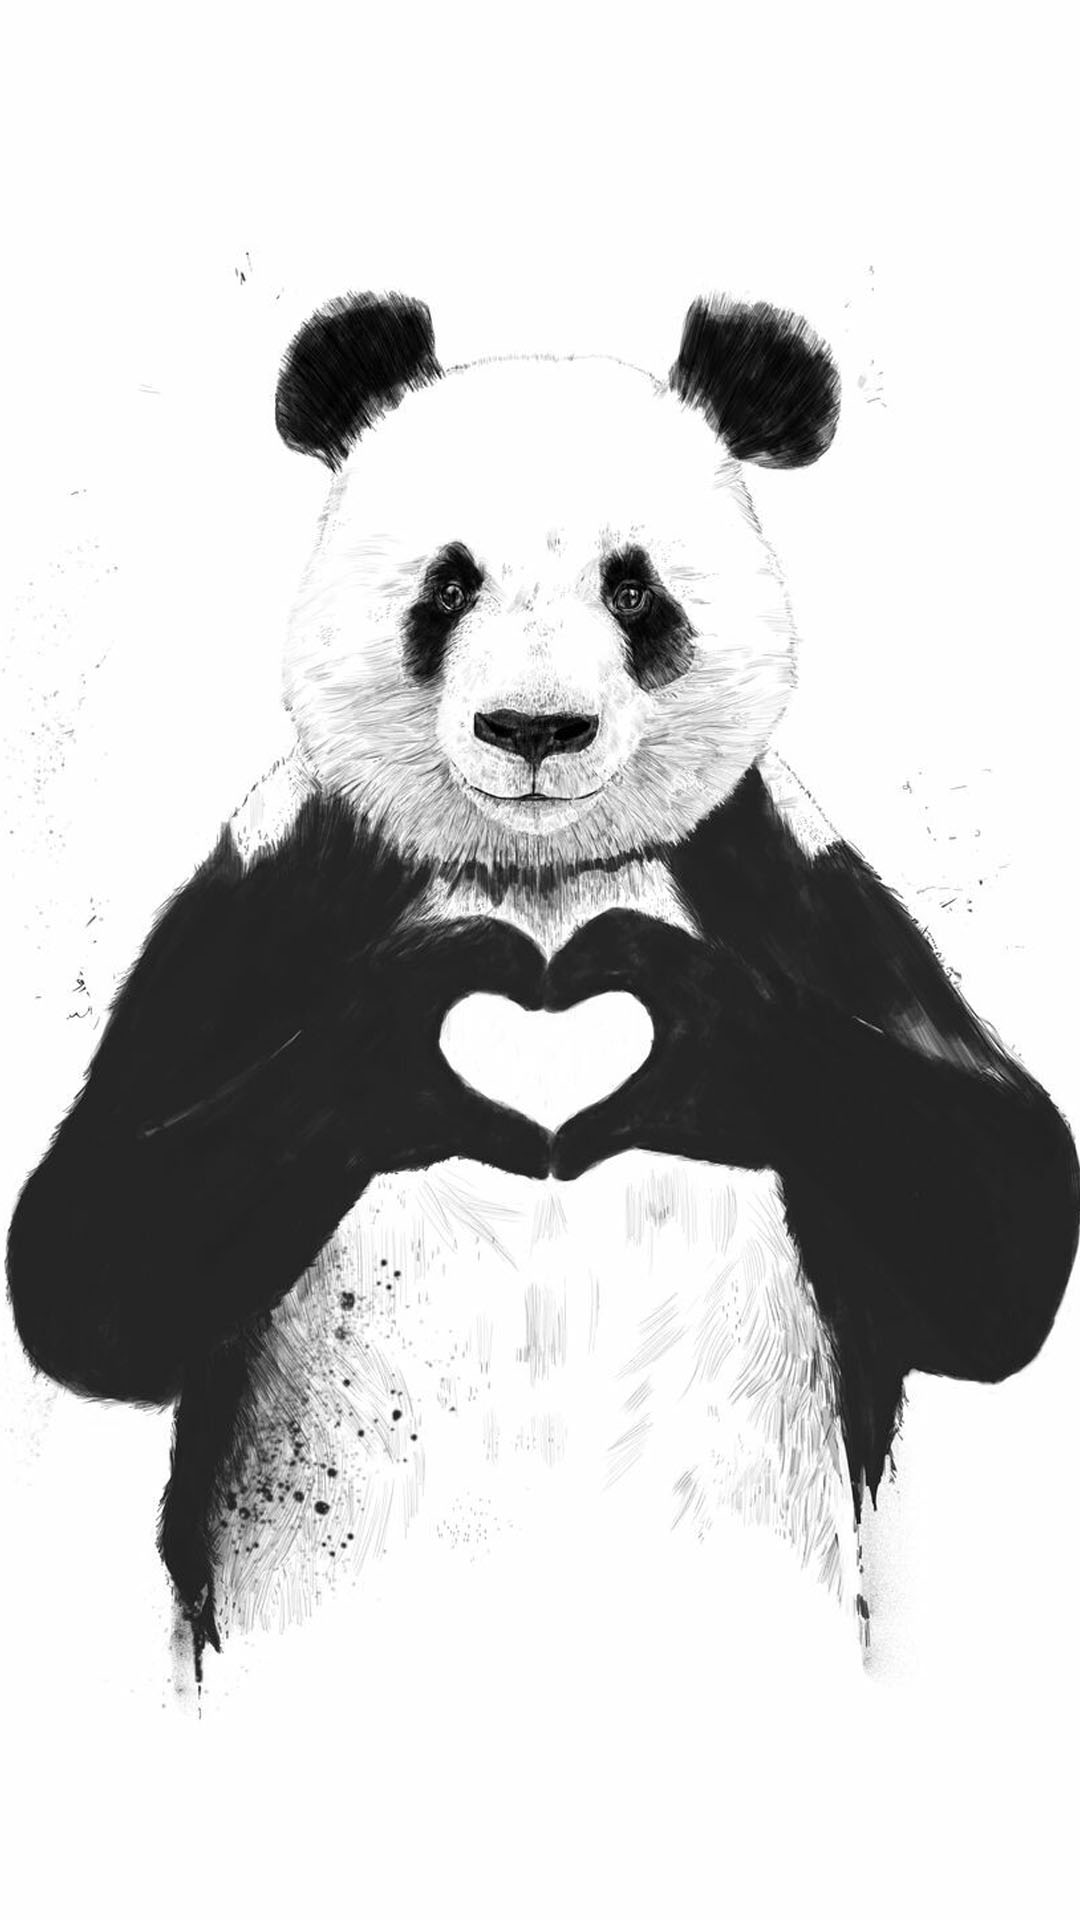 iPhone wallpaper panda heart 3Wallpapers : notre sélection de fonds d'écran du 27/02/2018